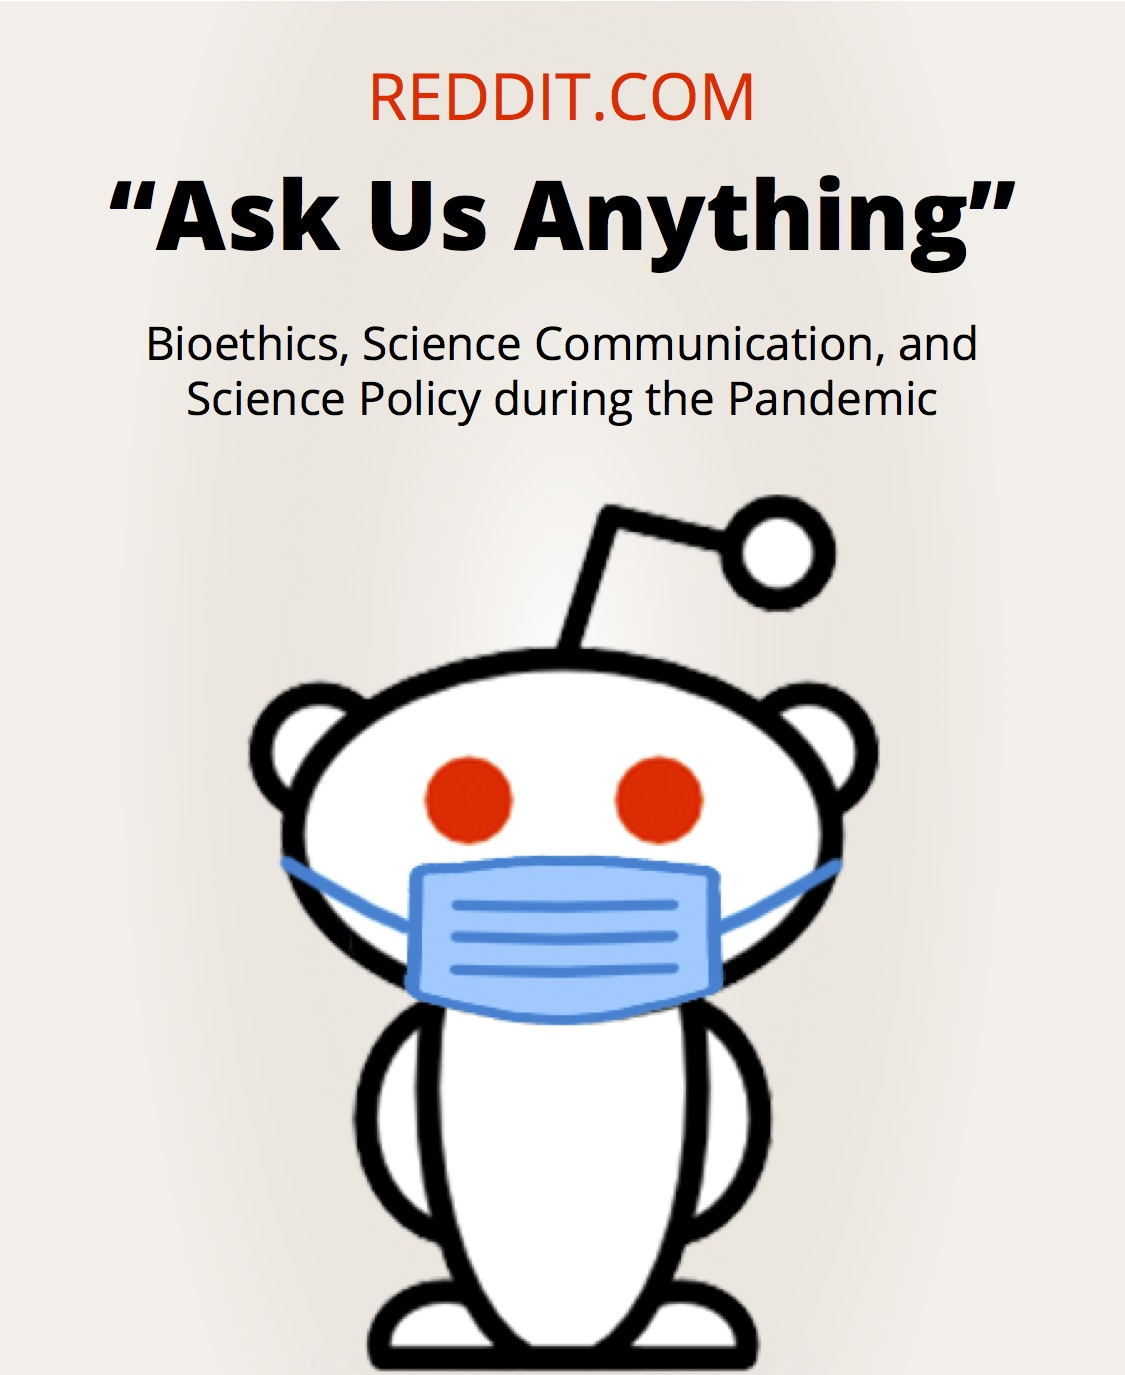 Reddit Ask Me Anything - bioethics, science communication, and science policy